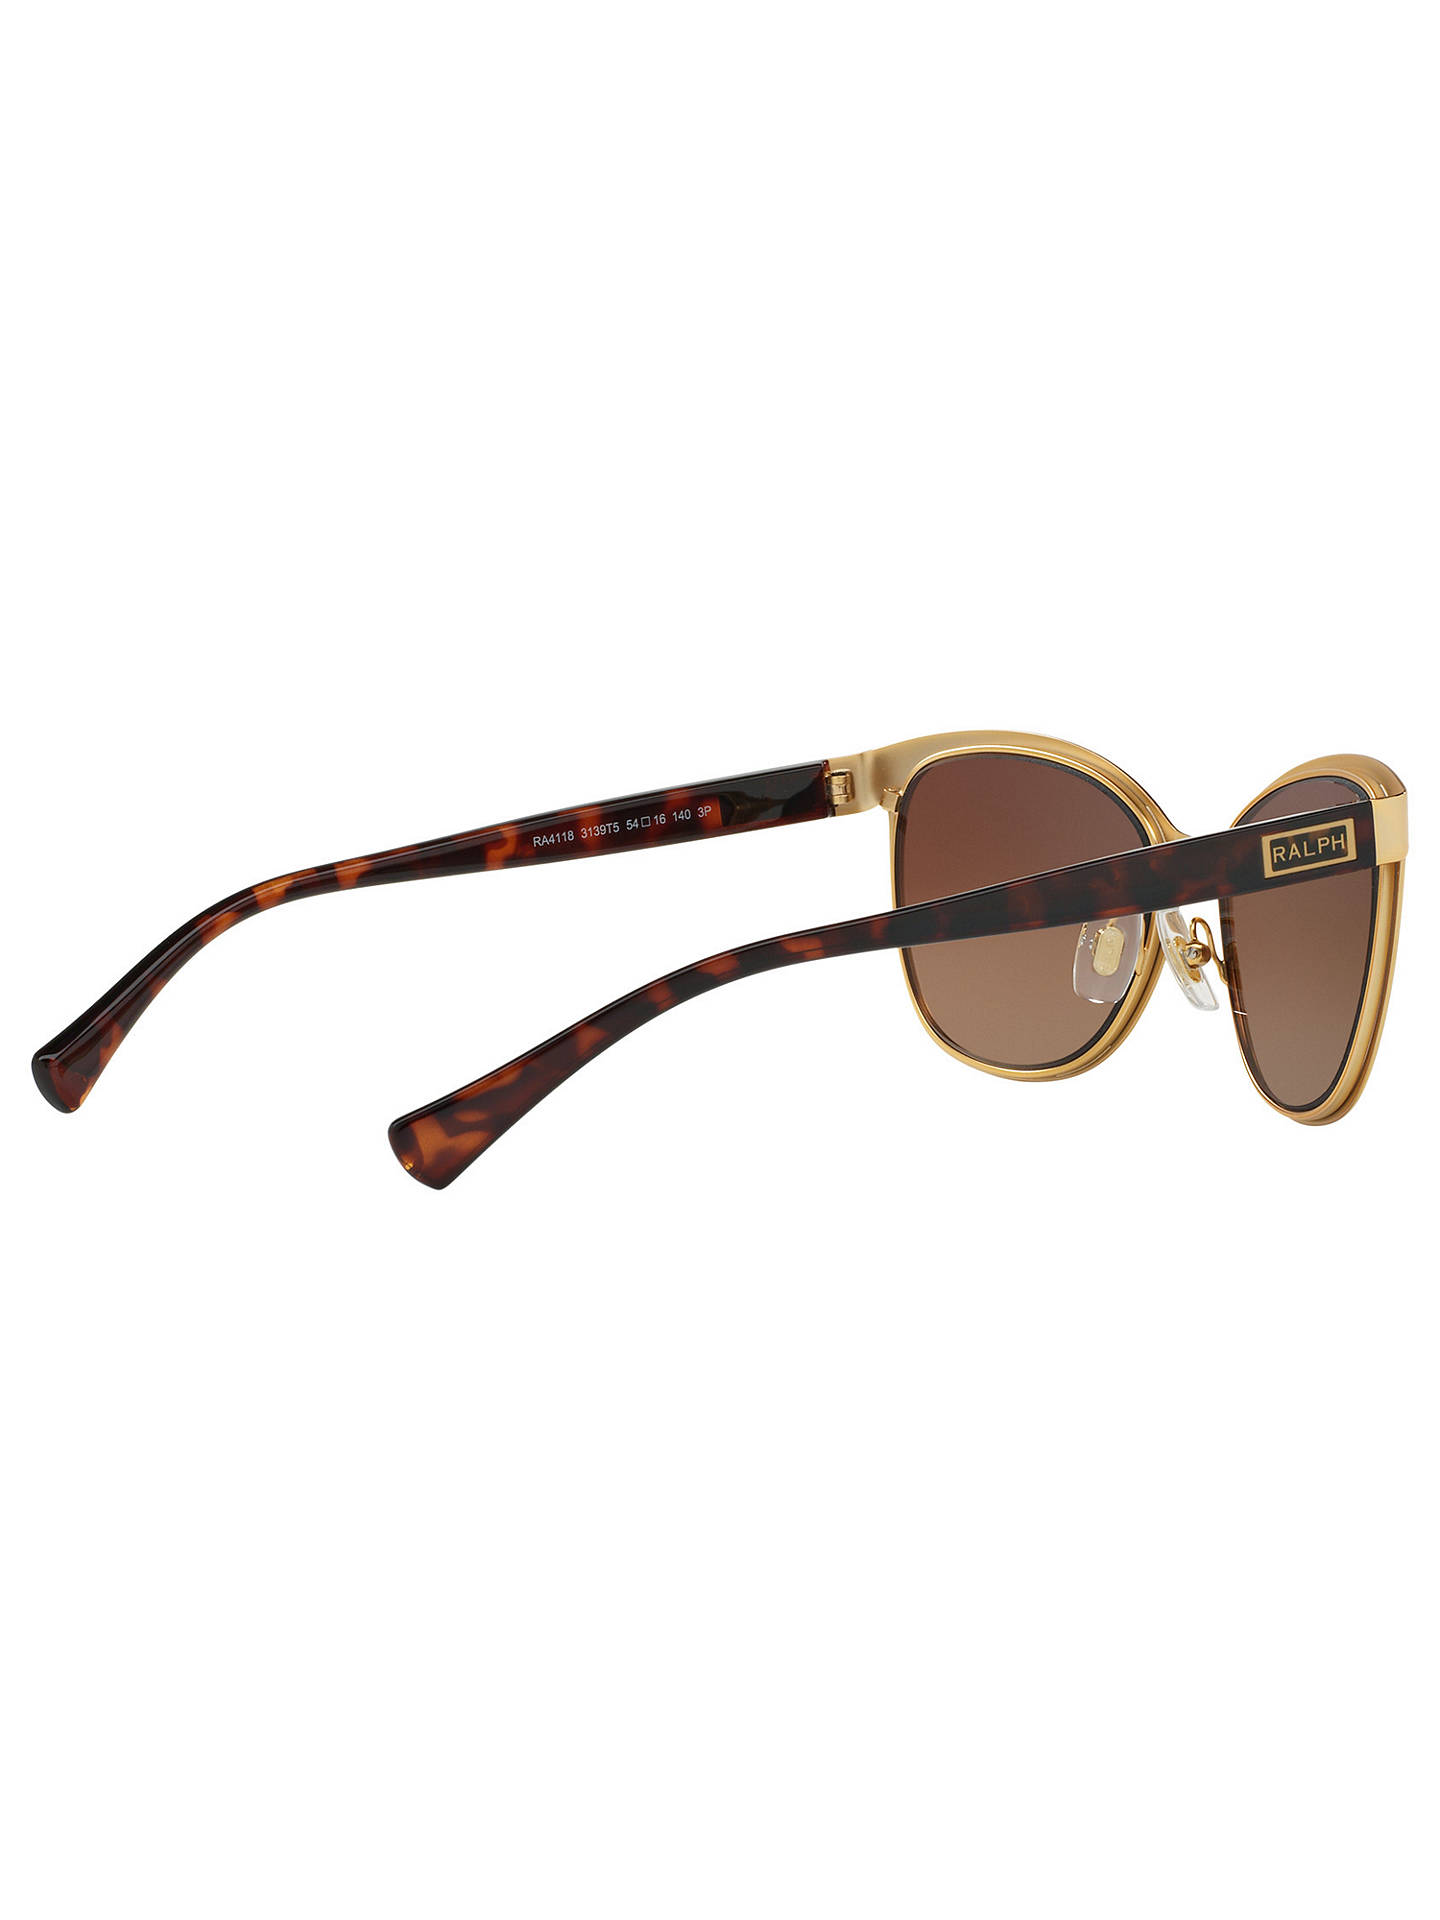 Buy Ralph RA4118 Polarised Cat's Eye Sunglasses, Gold/Brown Online at johnlewis.com